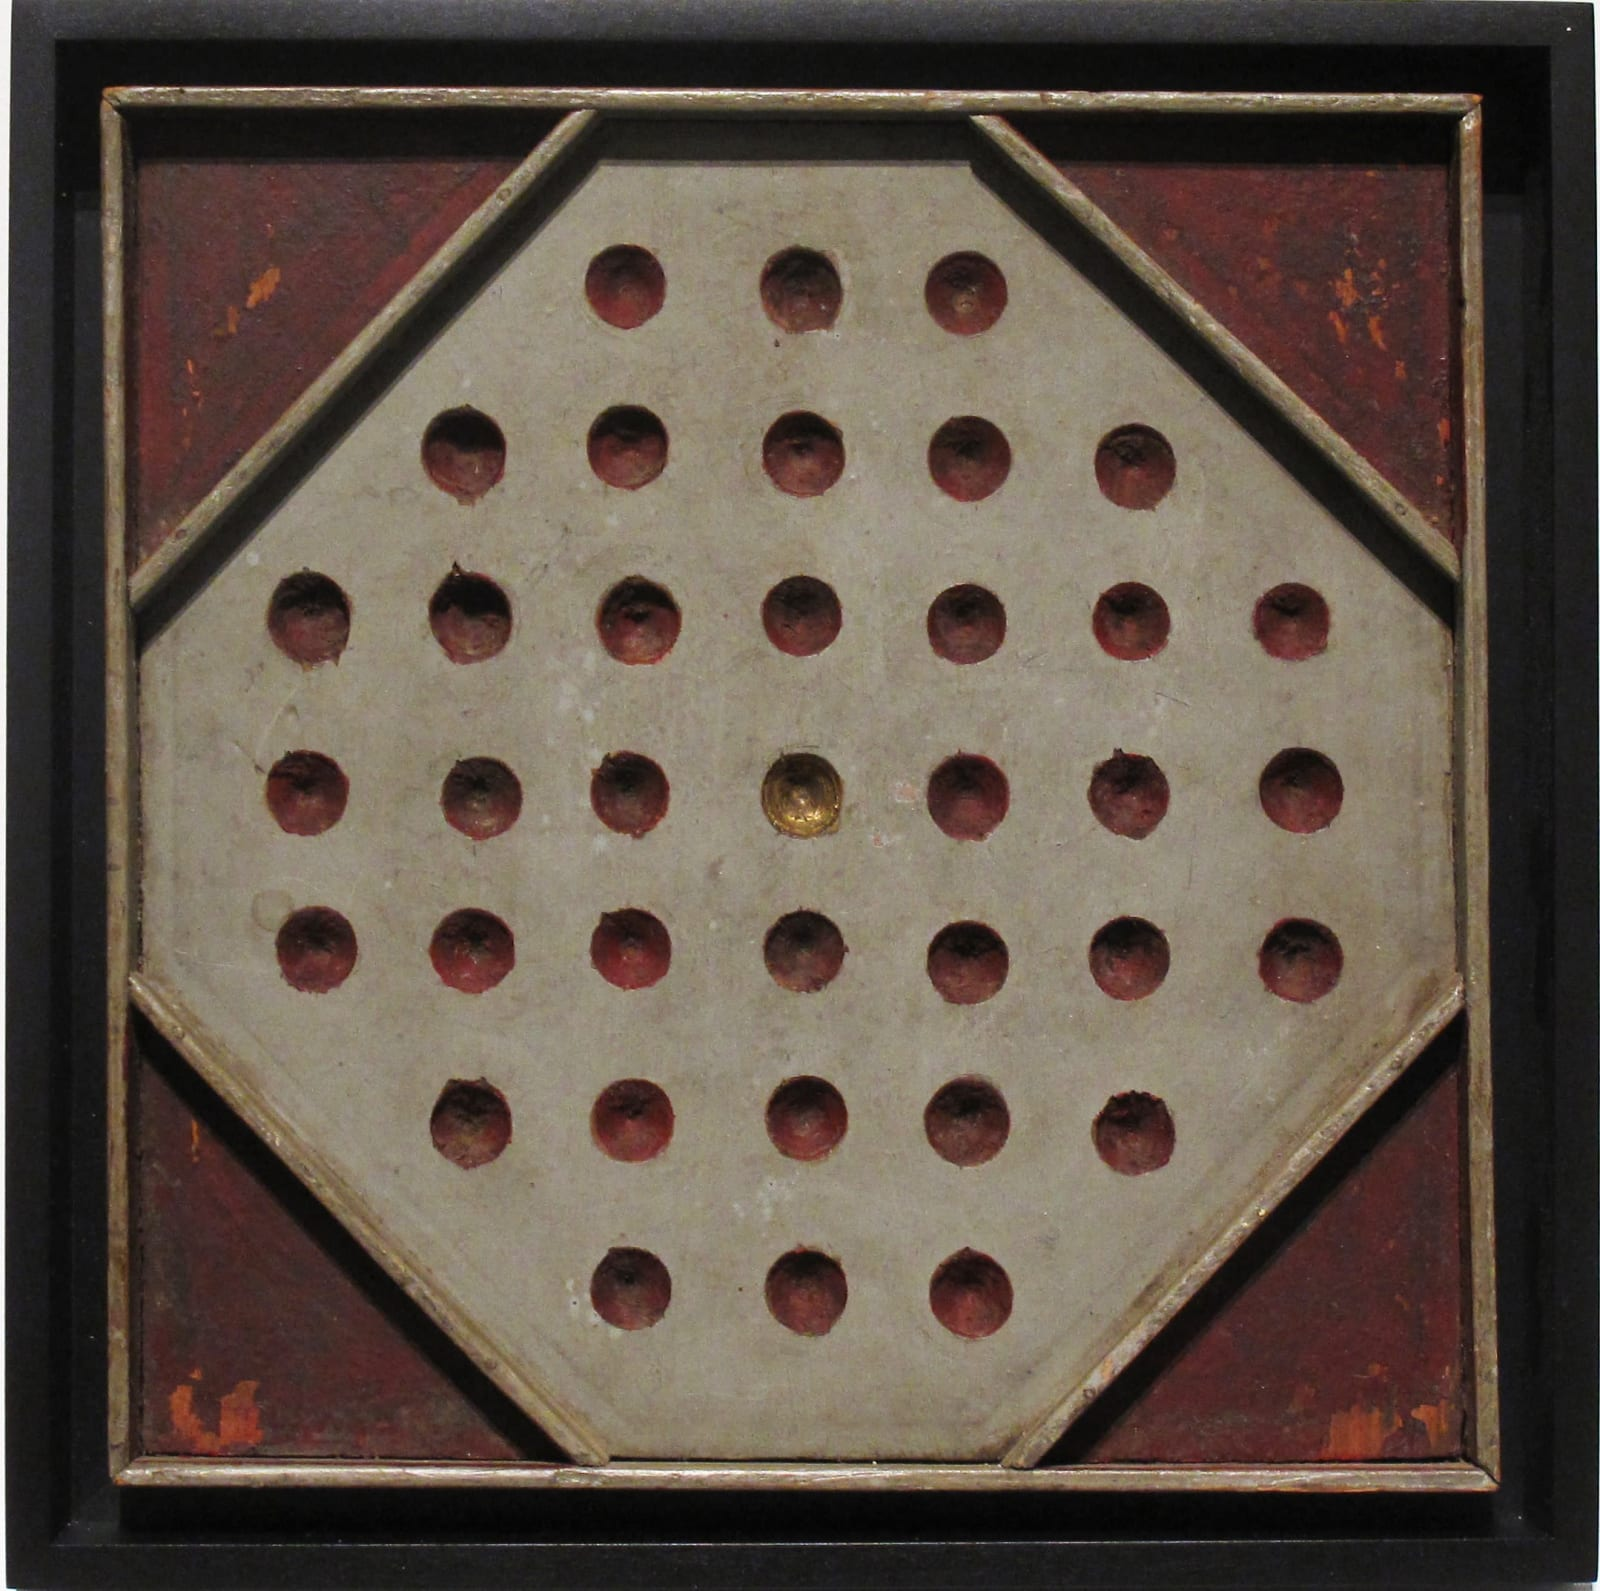 SOLITAIRE GAME BOARD, C. 1900-1910 Joined and carved wood with polychrome 11 1/2 x 11 1/2 in. 29.2 x 29.2 cm. (AU 294)